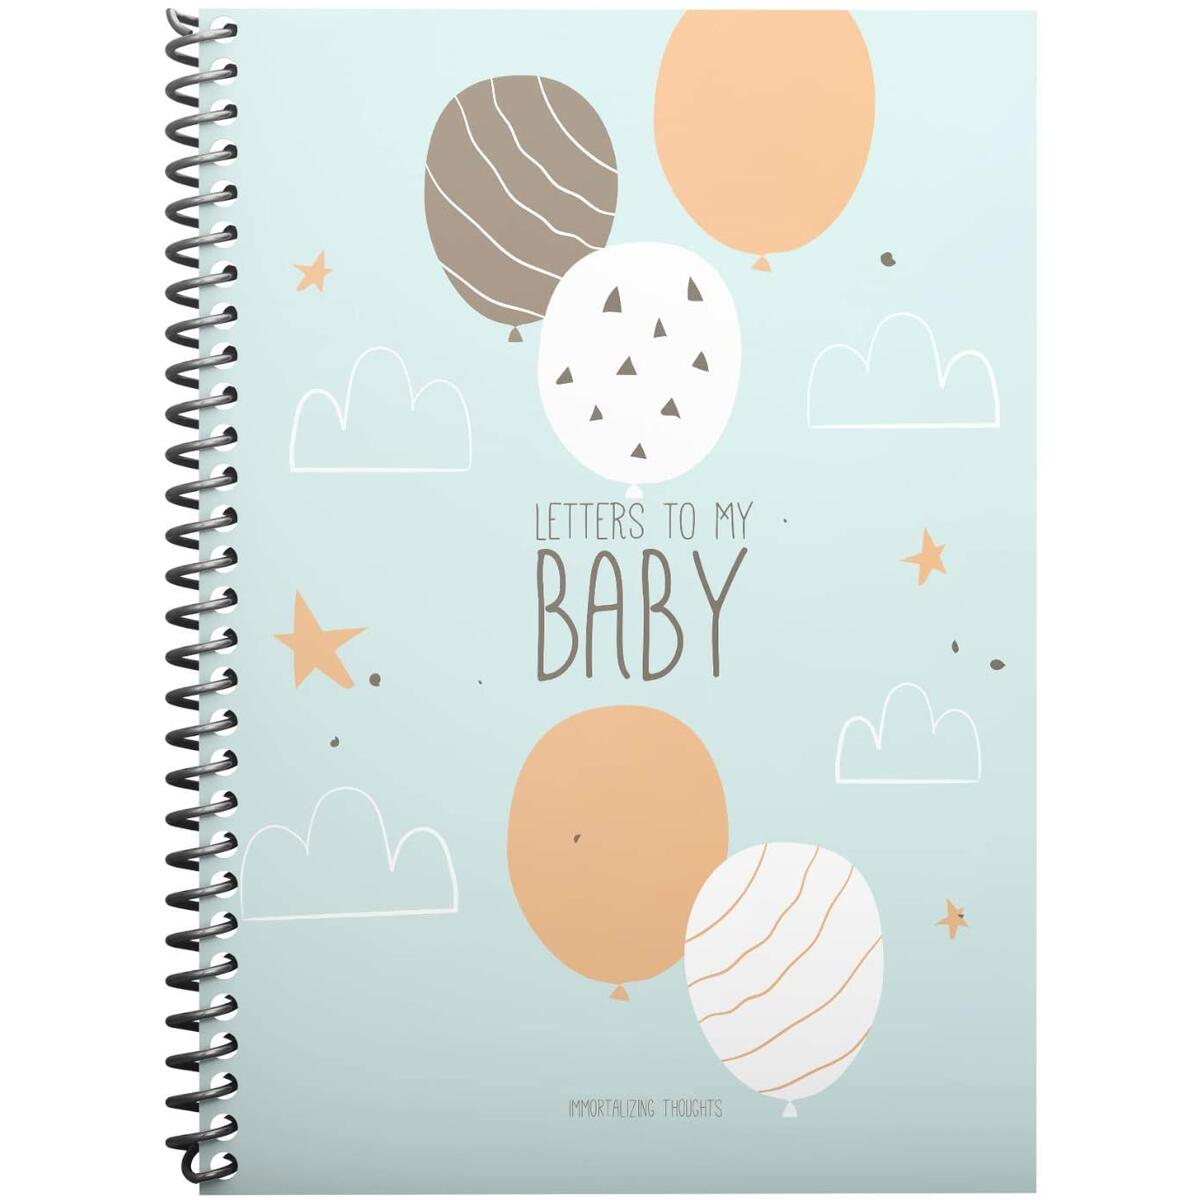 Letters to My Baby: Personalized Baby Books for Newborn, Memorial Time Capsule for Childs and a Journal Book, Write Now and Read Later, 6x8 inches, 30 Pages, Removable Sheets and Stickers Included